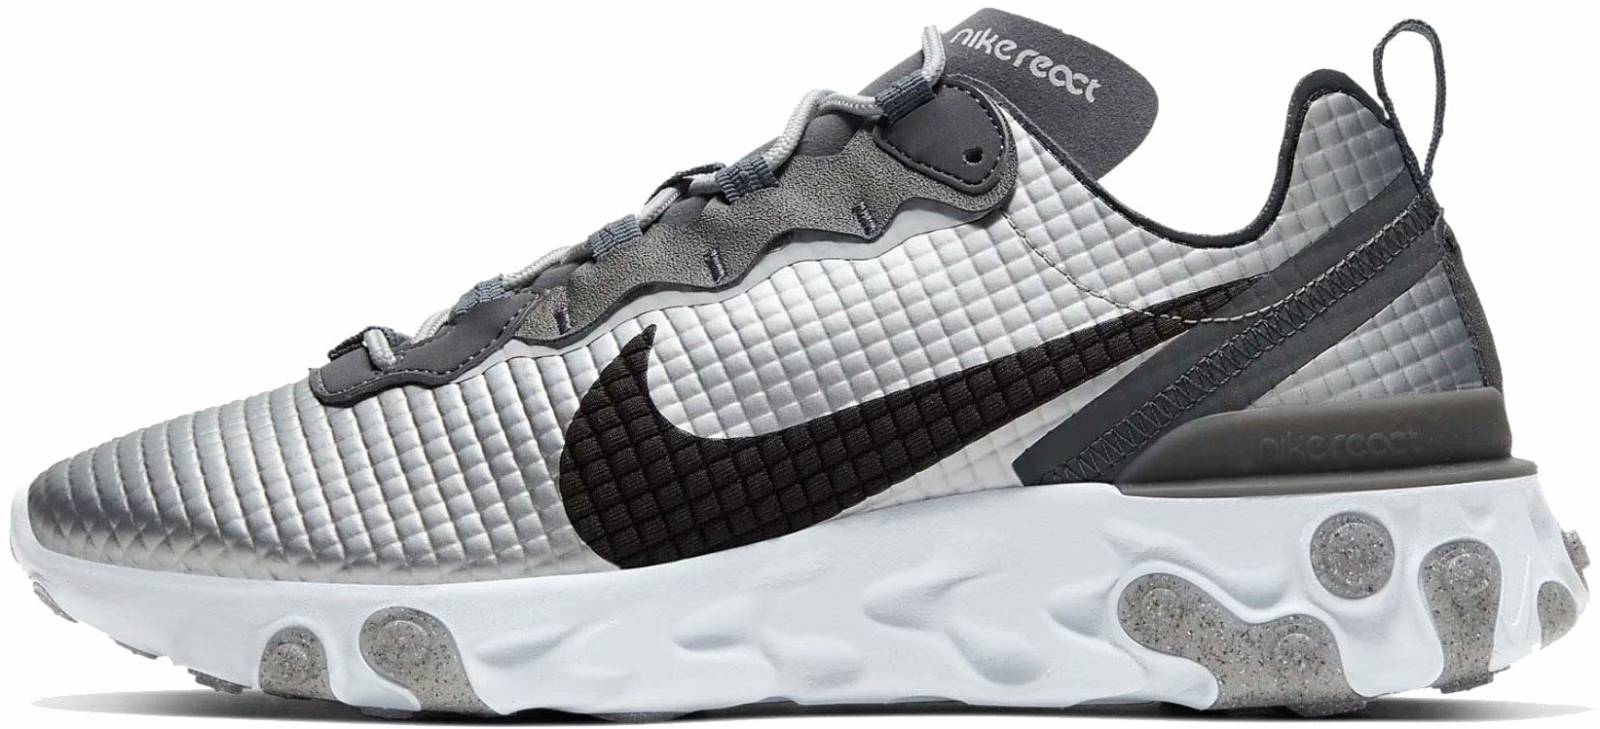 pulgar Contento Desconexión  Only $67 + Review of Nike React Element 55 Premium | RunRepeat